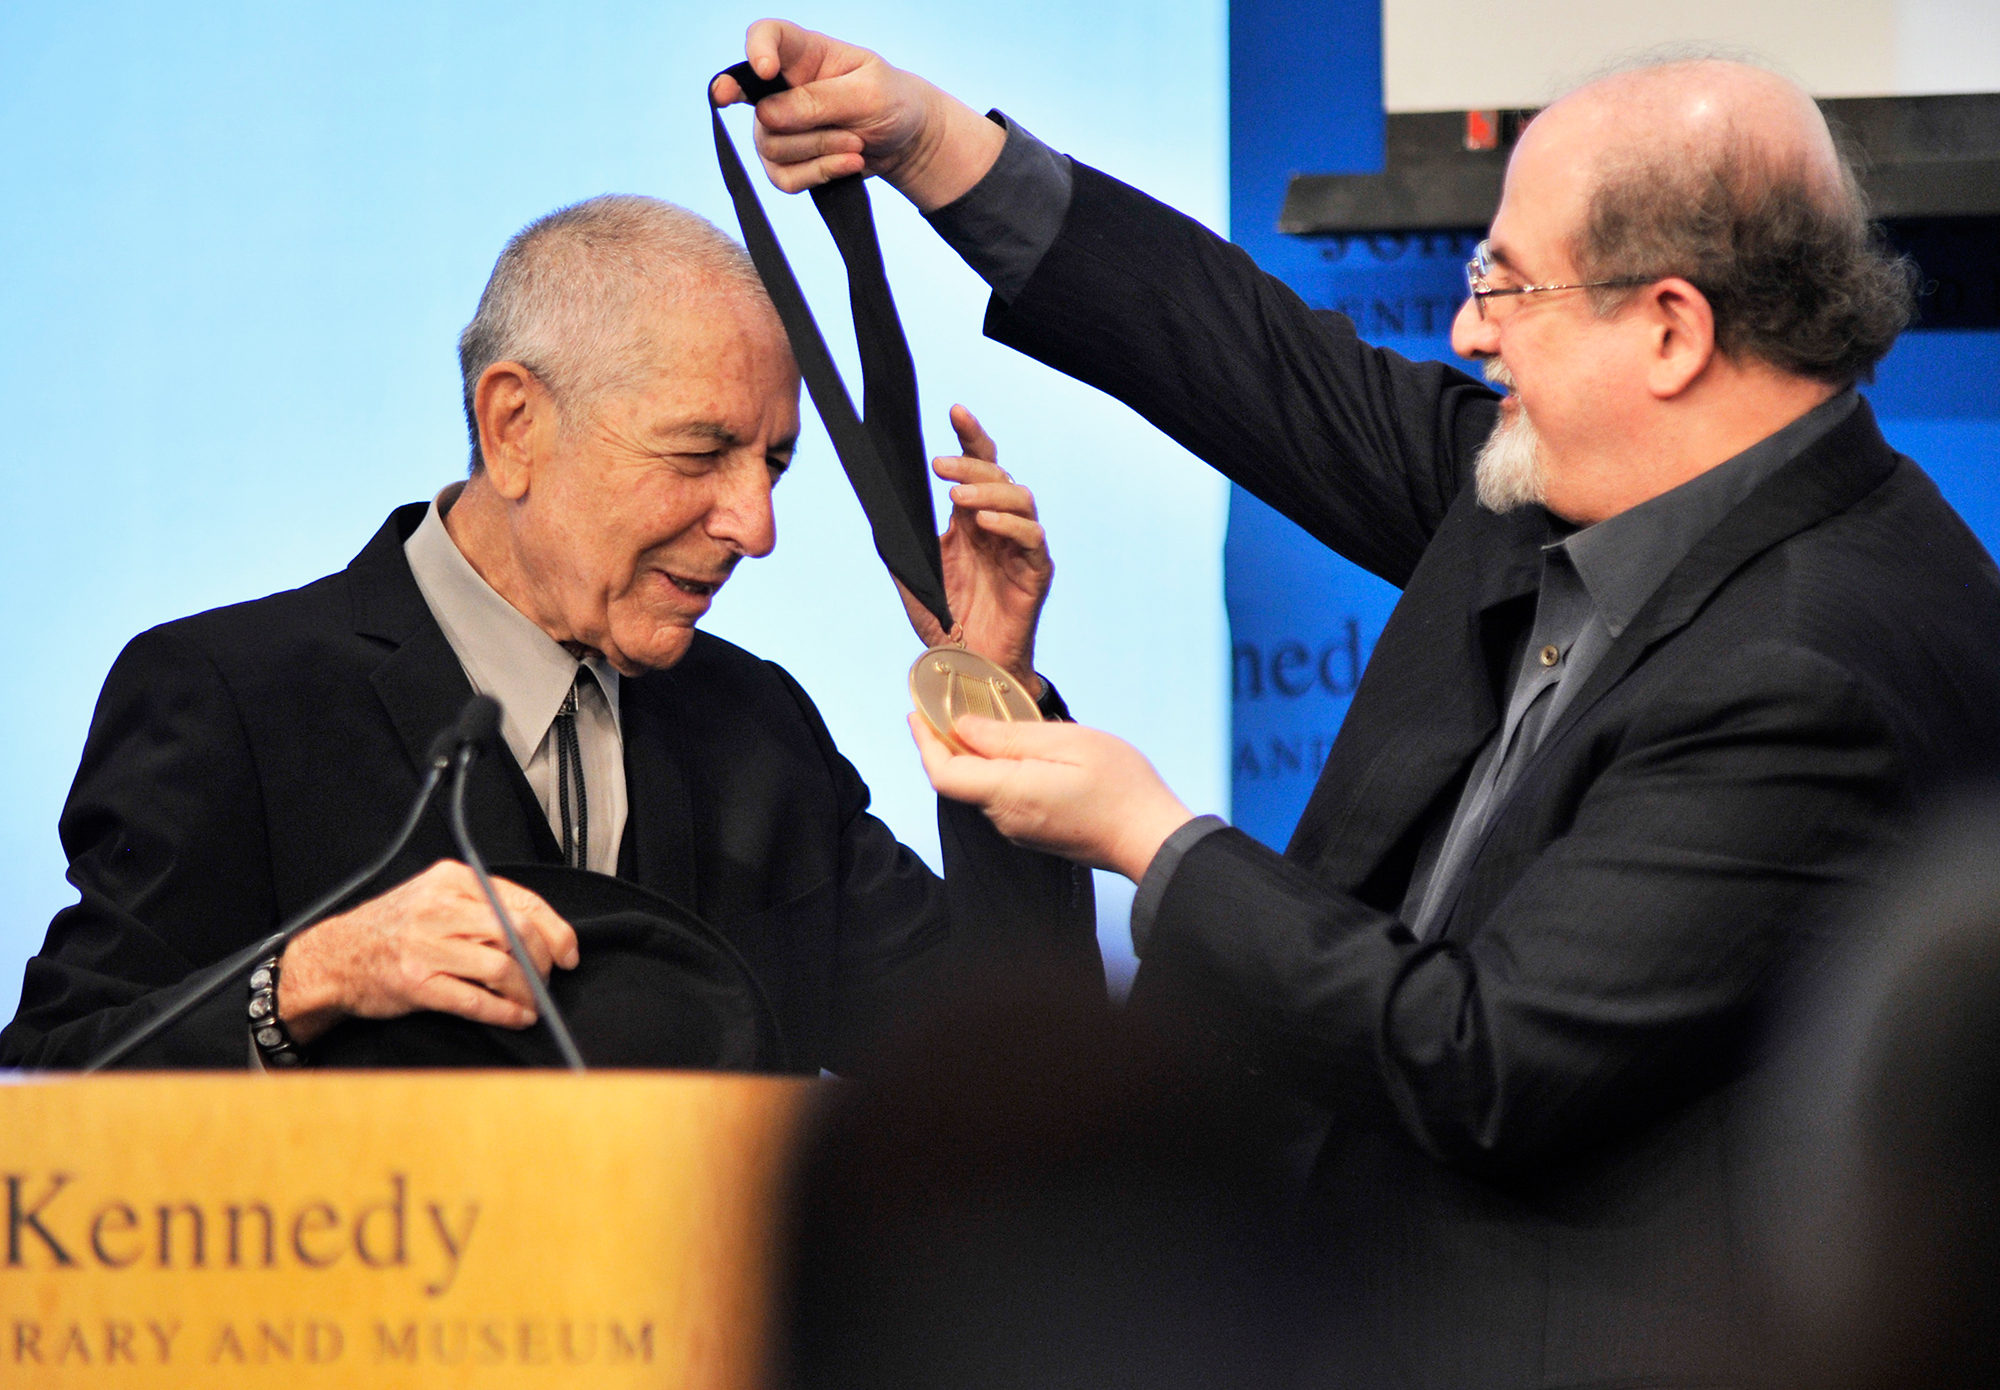 Leonard Cohen accepts an award presented by Salman Rushdie at the John F. Kennedy Presidential Library and Museum in Boston, on Feb. 26, 2012.